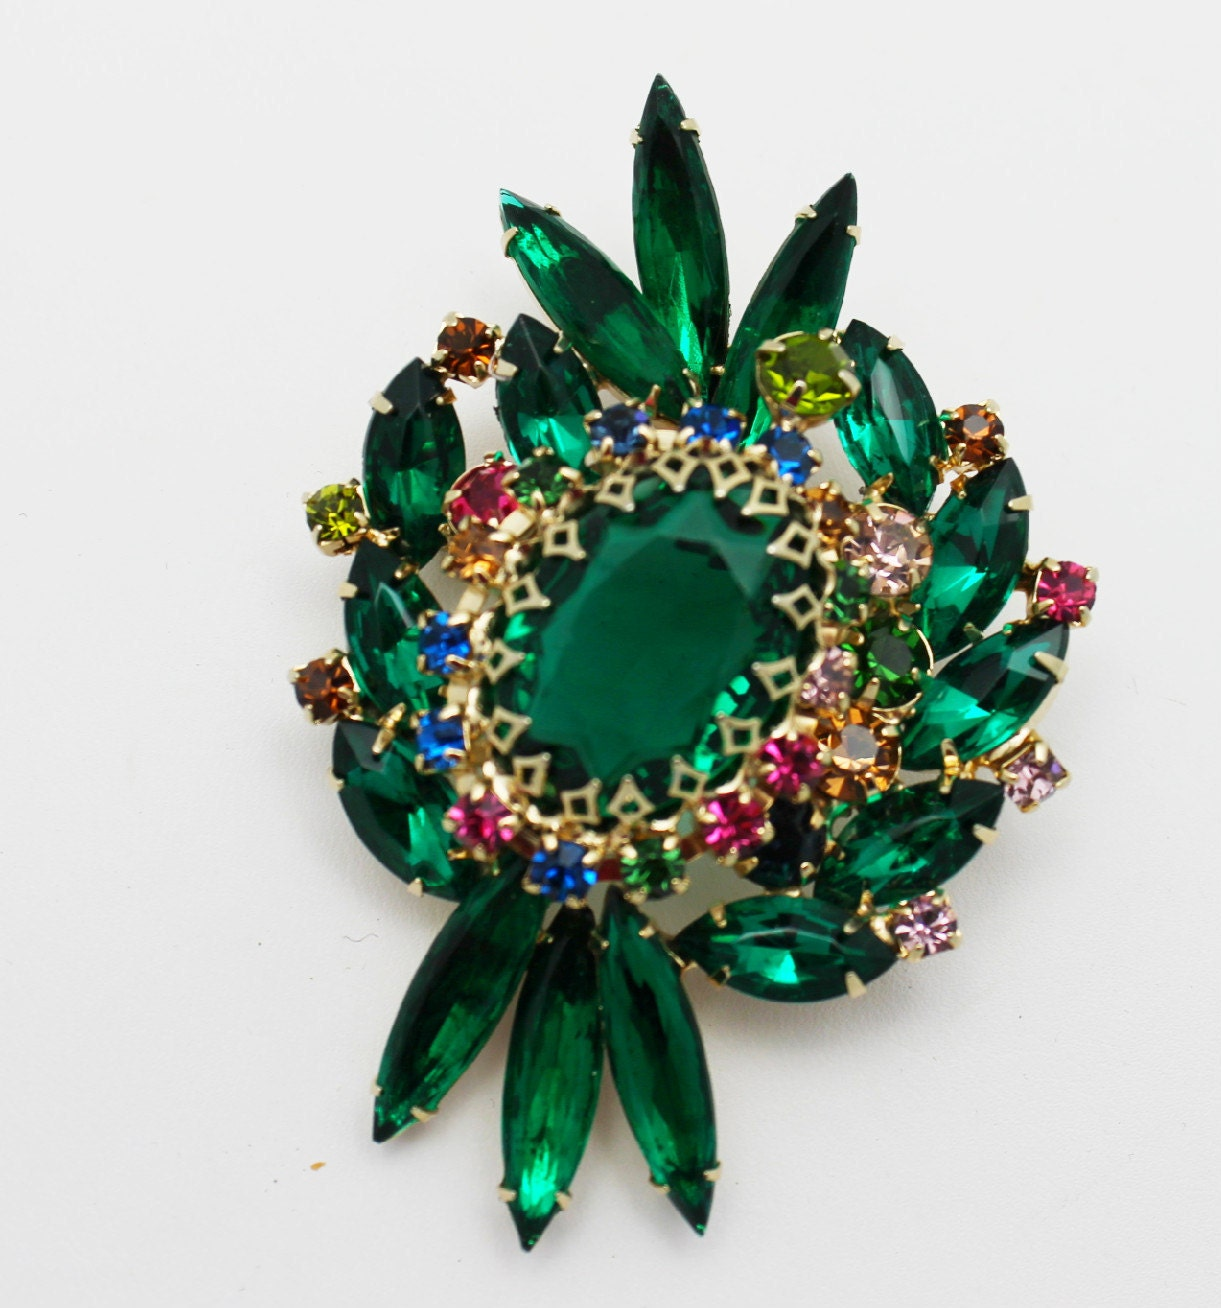 Vintage Brooch Emerald Green Large and Ornate - HeirloomBandB